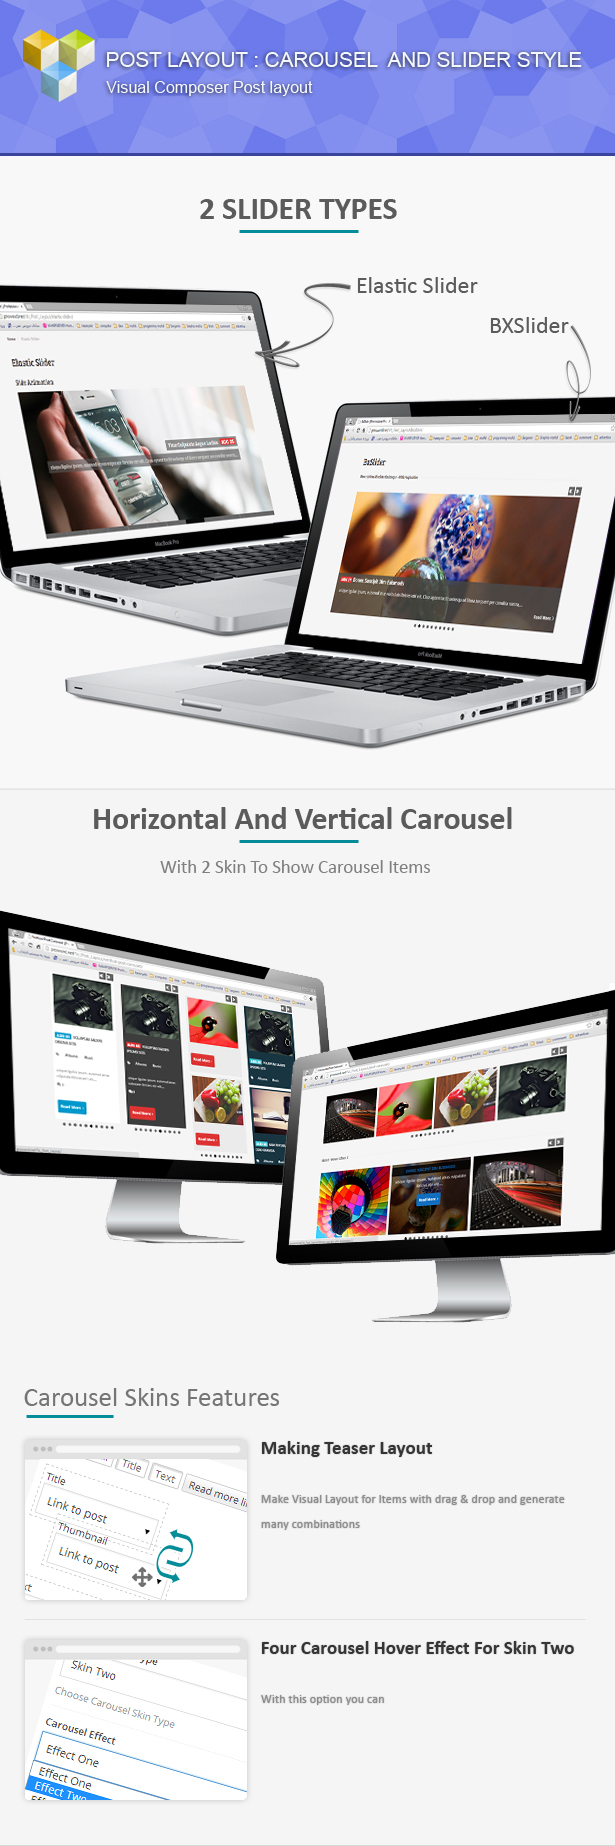 Post Layout: Carousel + Slider for Visual Composer - 2